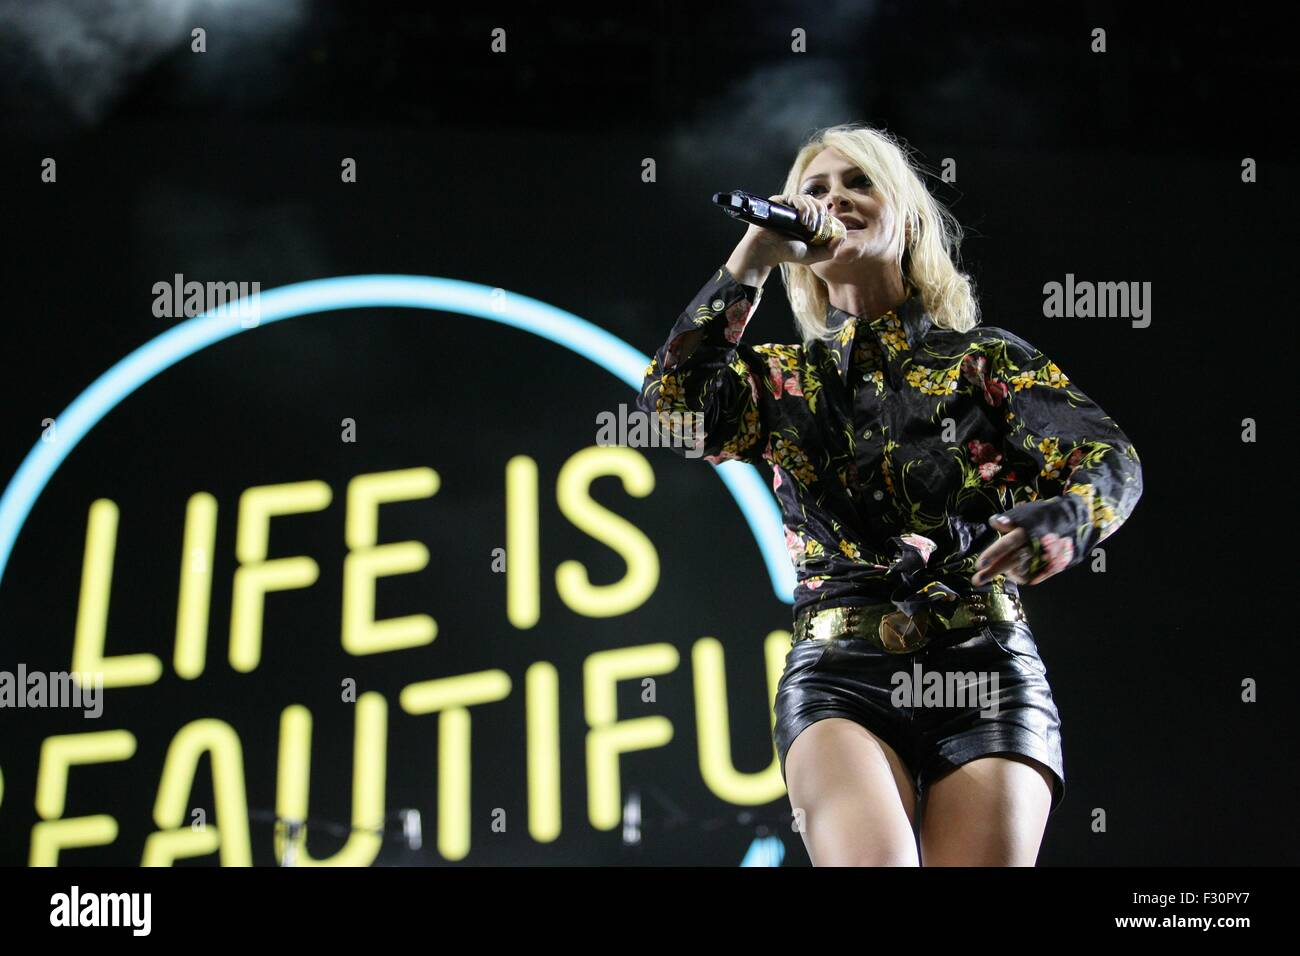 Las Vegas, NV, USA. 26th Sep, 2015. Emily Haines of Metric in attendance for 2015 Life Is Beautiful Festival - SAT, Stock Photo